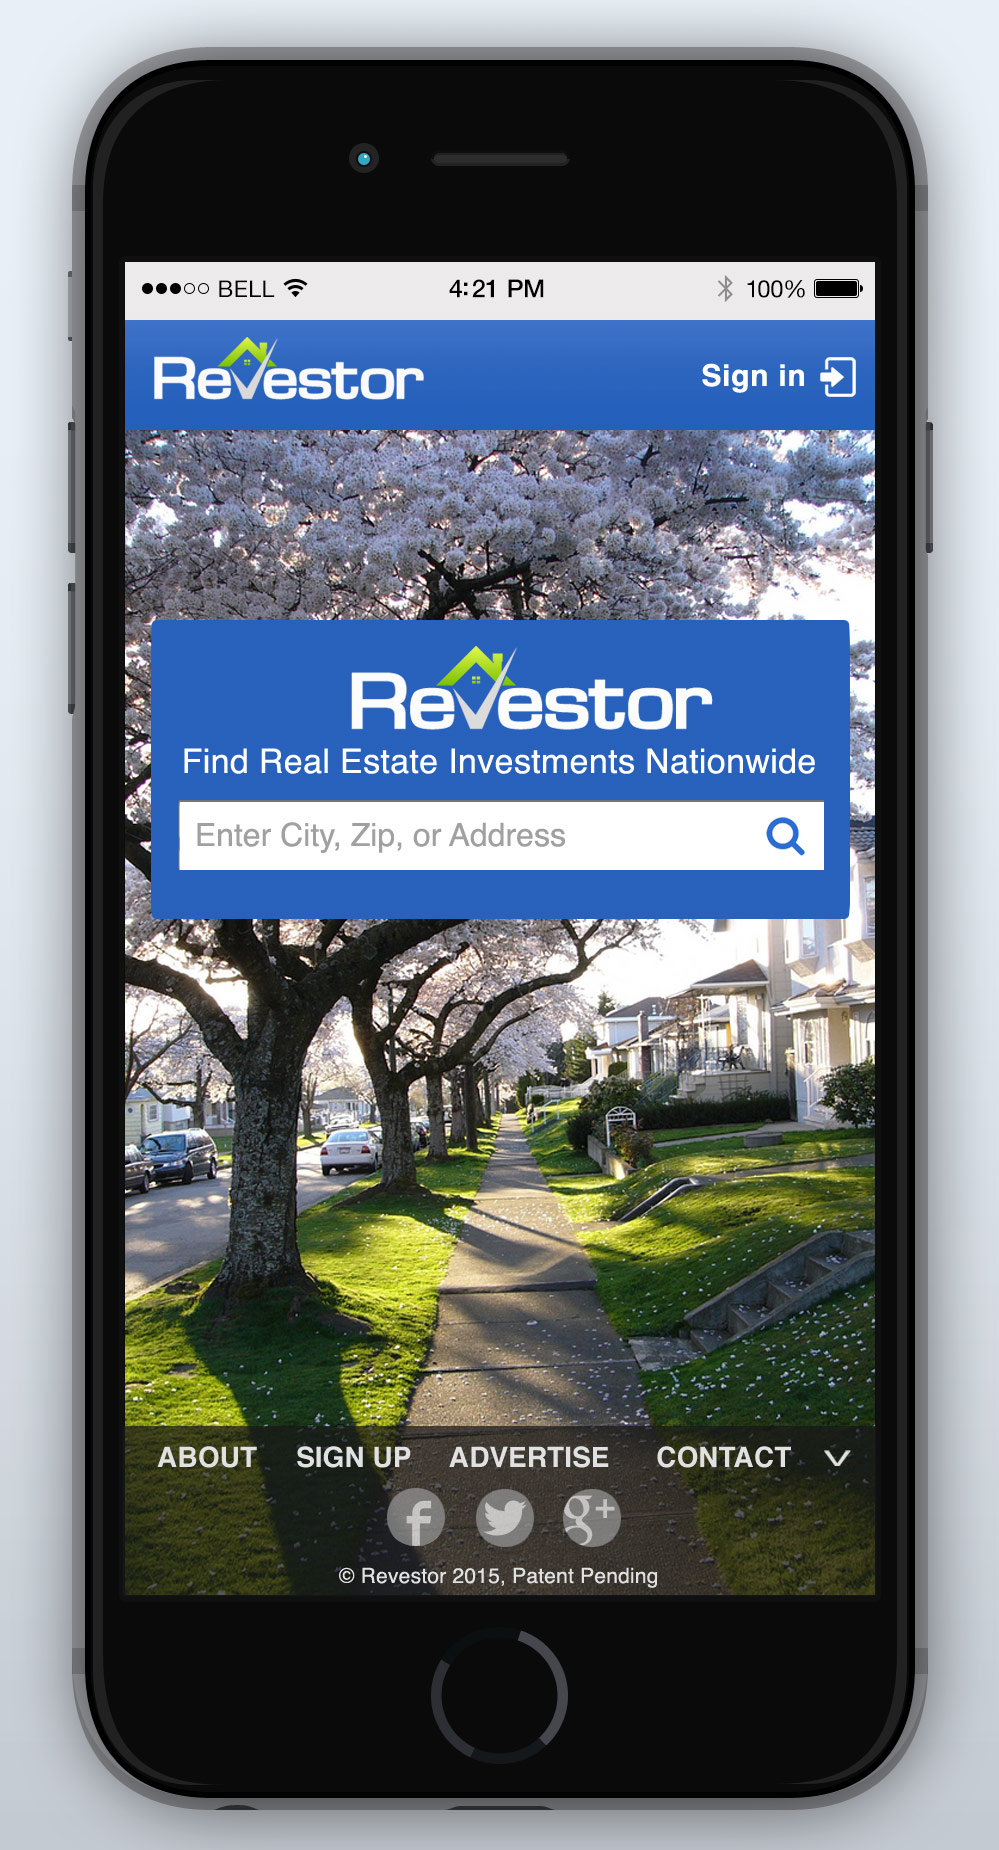 Revestor_iPhone6_HOME_v.3.2